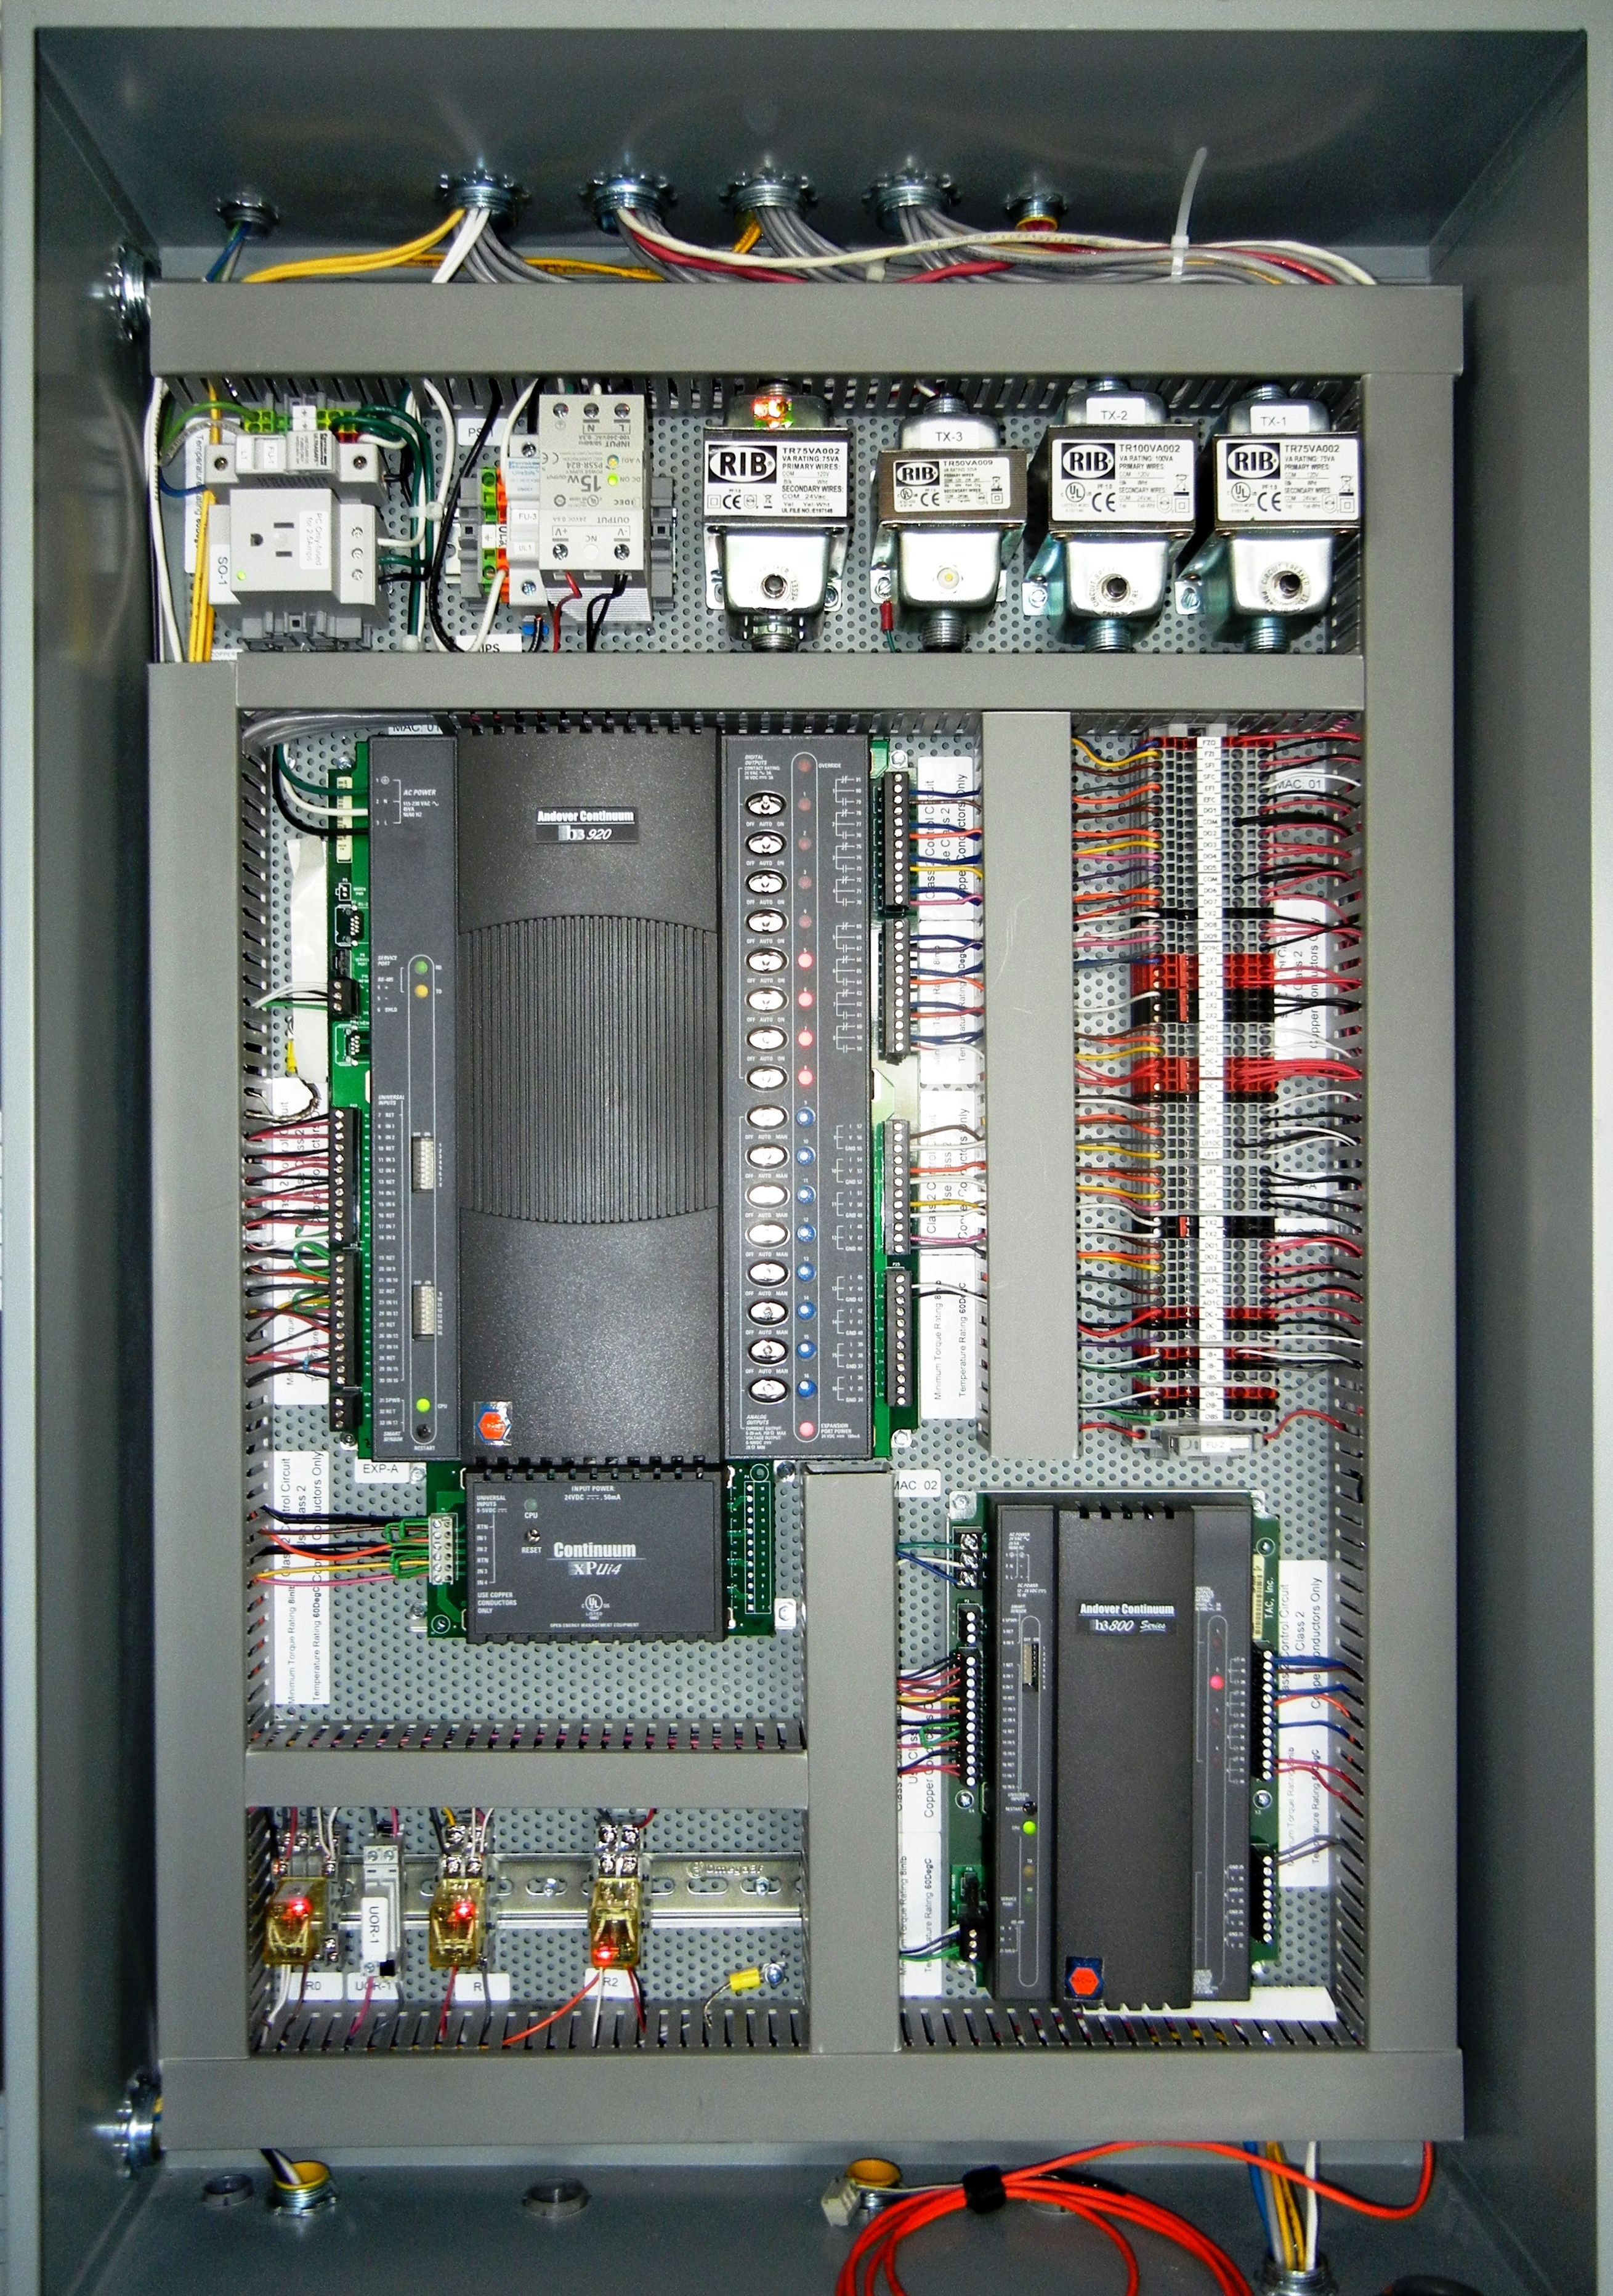 Building Automation At Its Finest Technology Innovation In 2018 Touch Dimmer For Lamps Electronic Circuits And Diagramelectronics Engineering Electrical Wiring Plc Programming